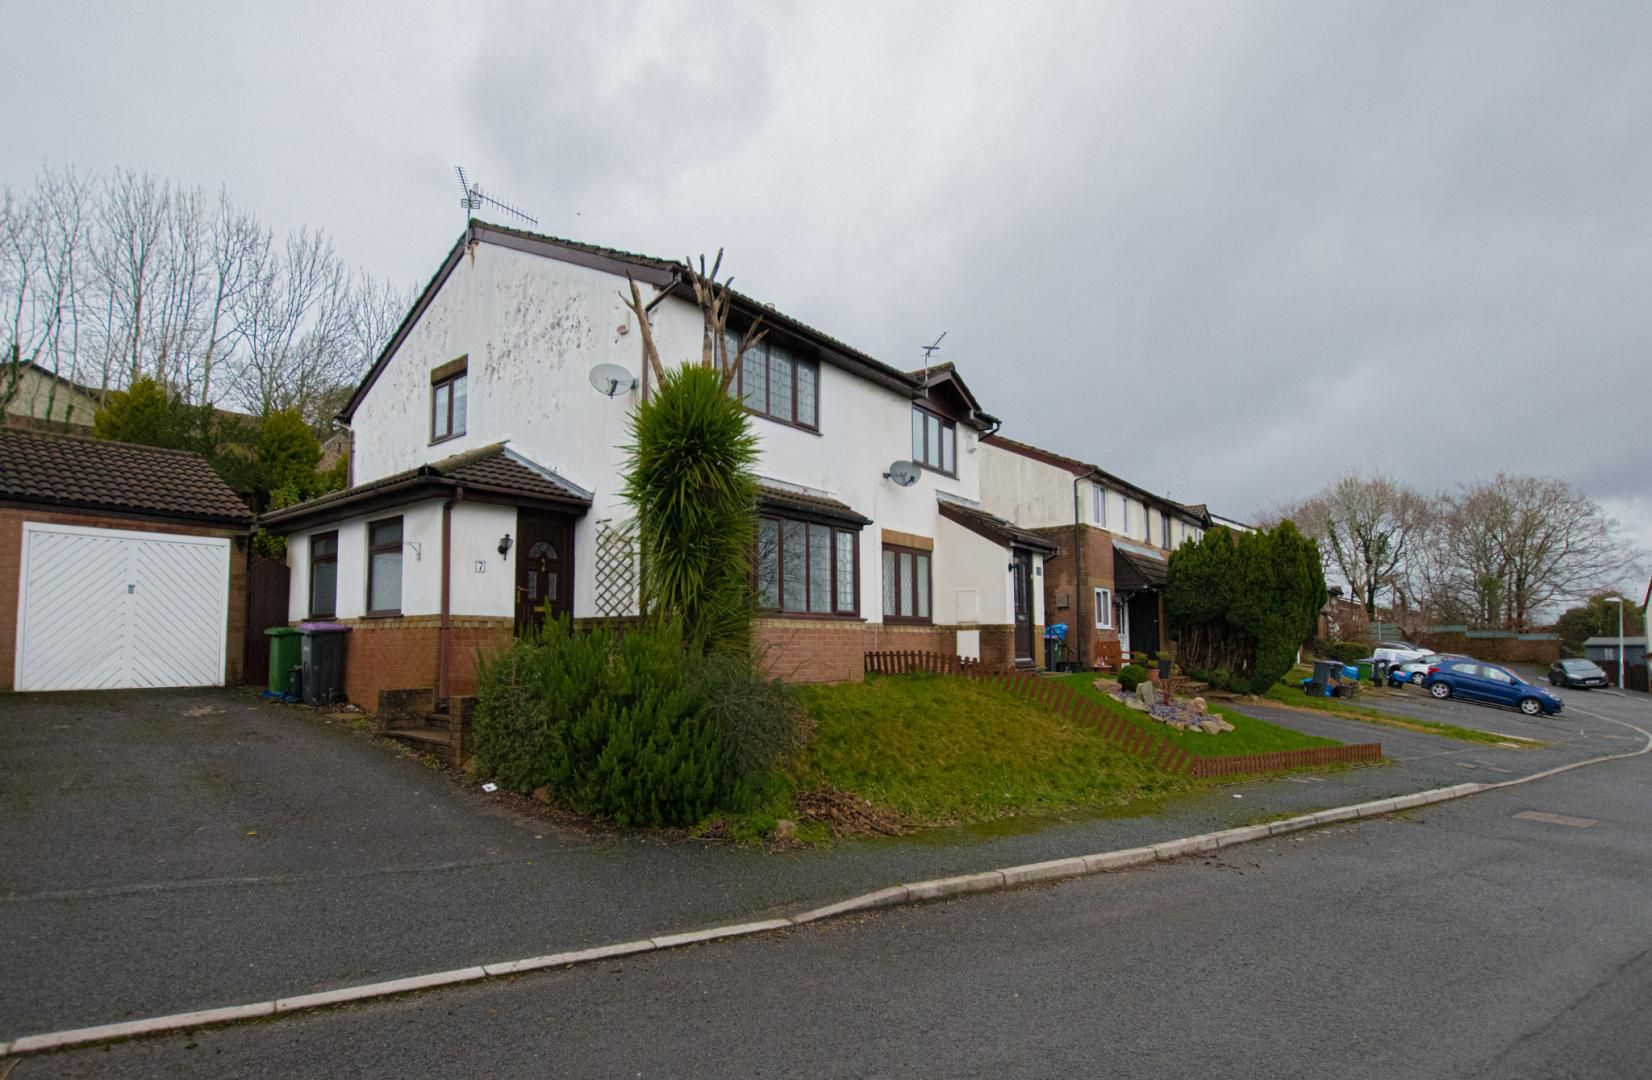 2 bed house to rent in Oaklands View, NP44